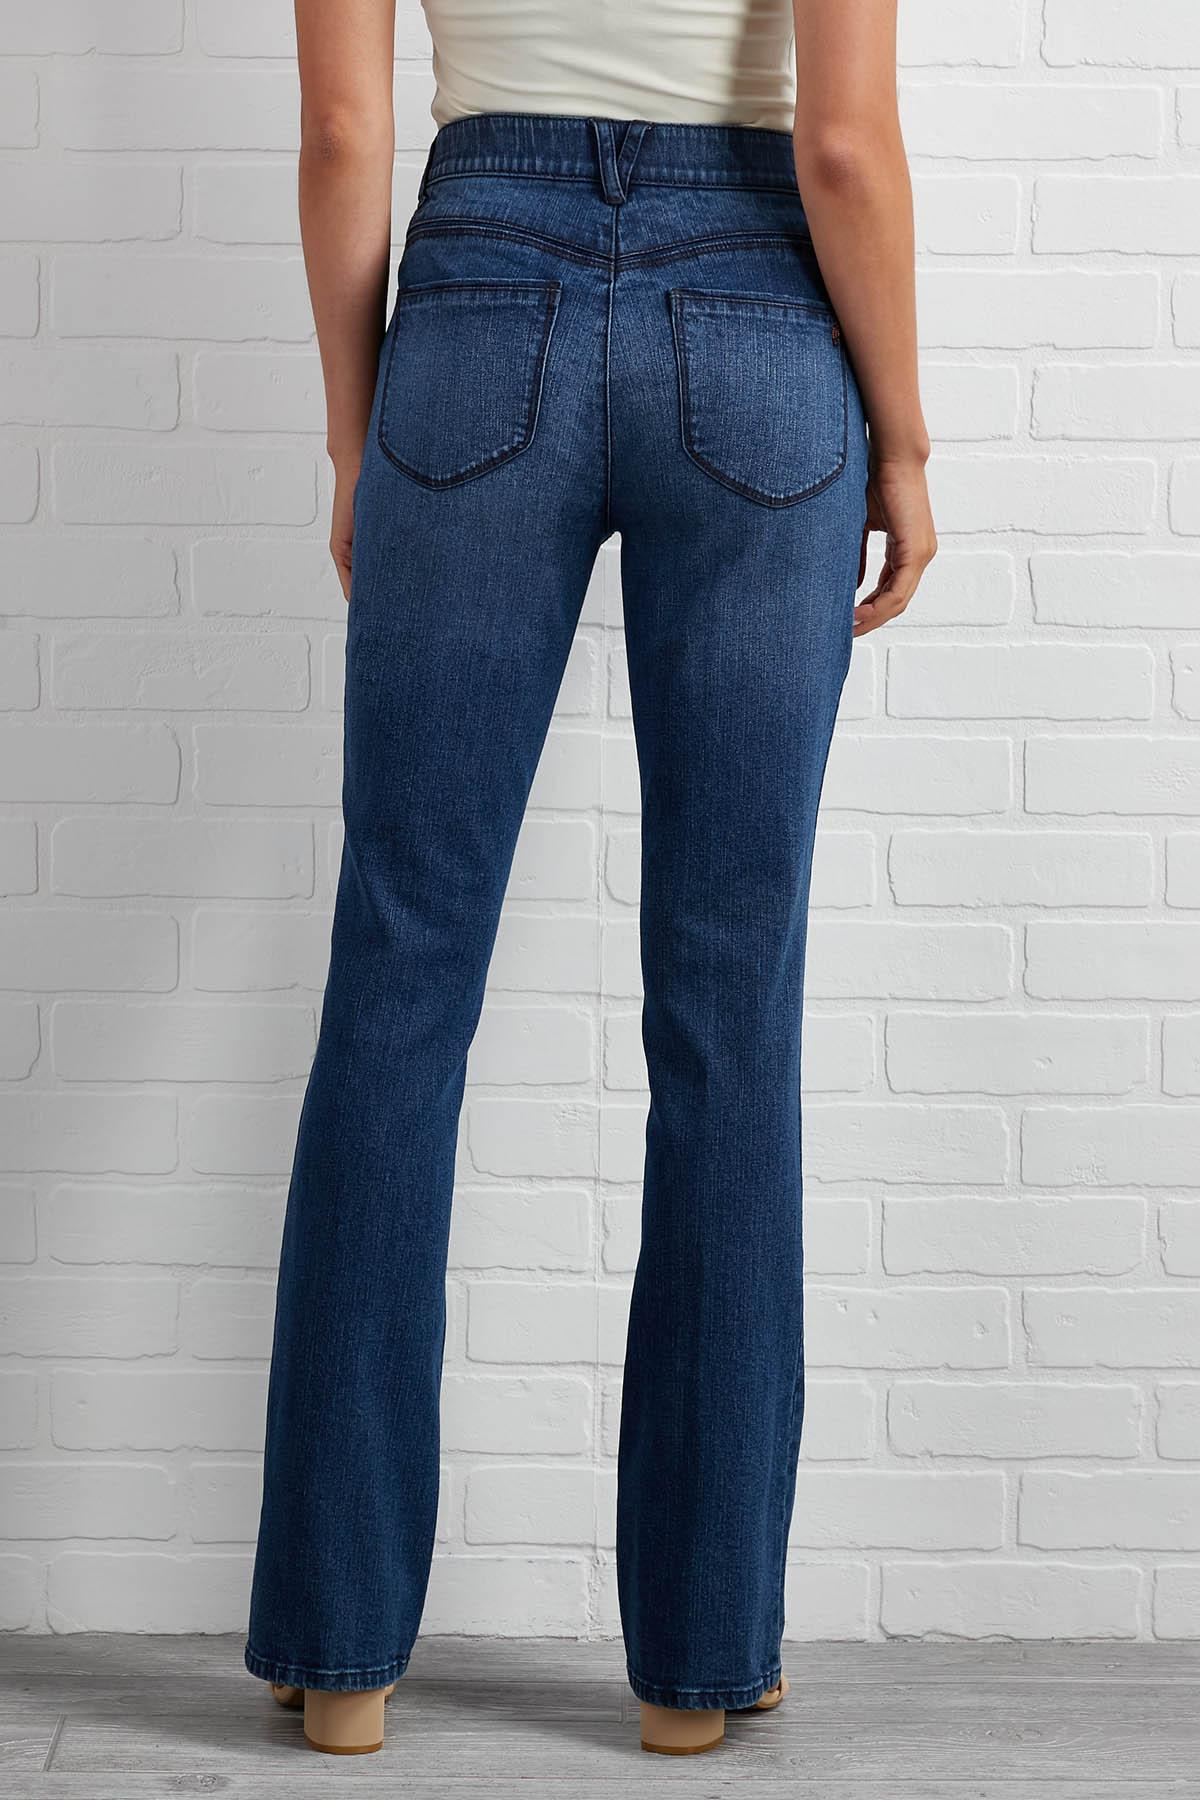 Best Of The Best Jeans